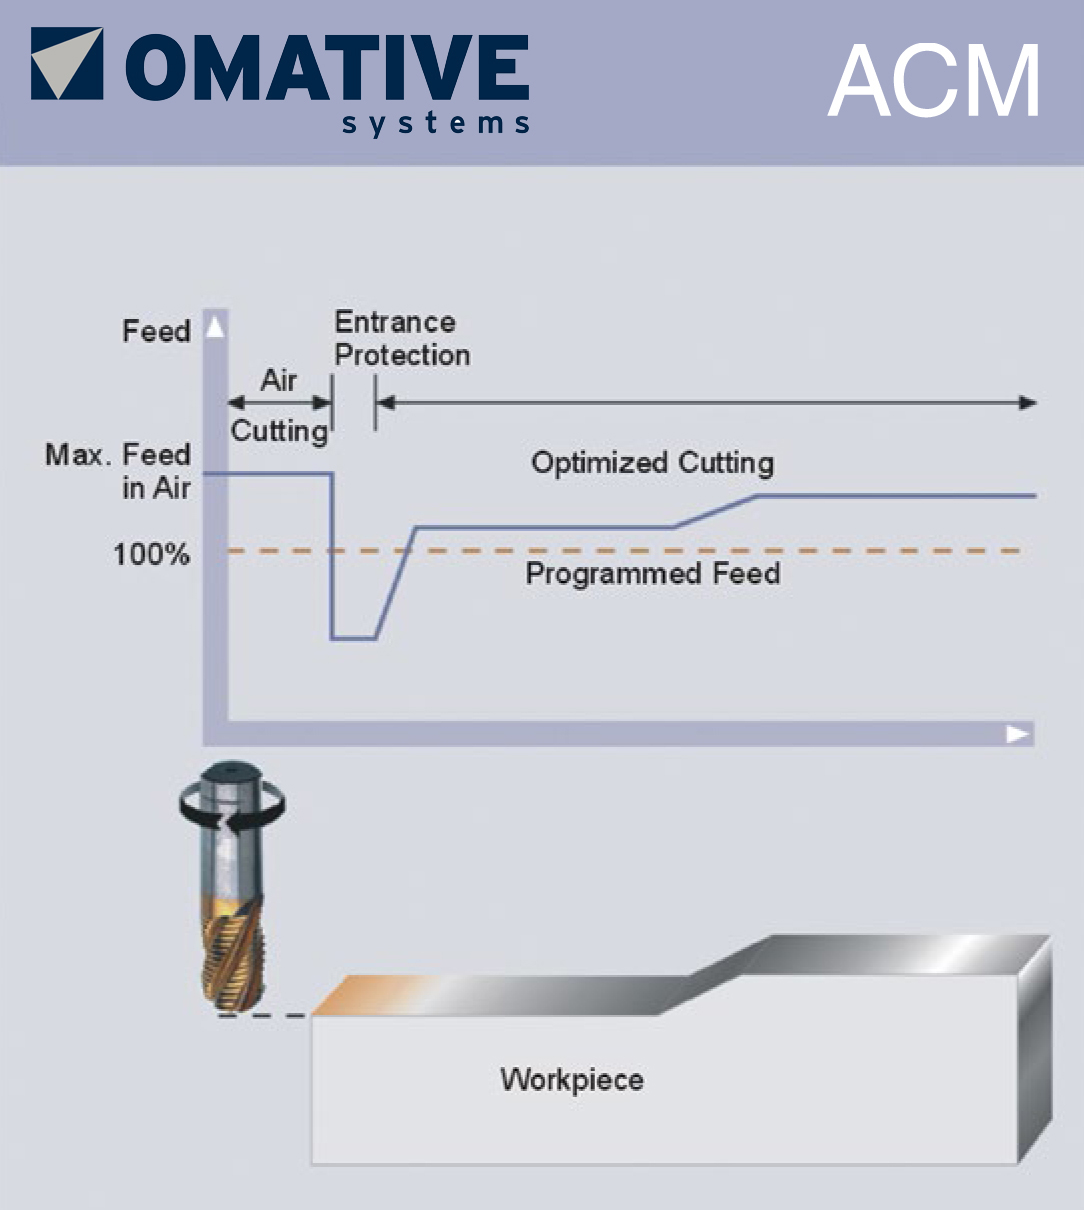 Software for adaptive machining, vibration monitoring, and shop floor management